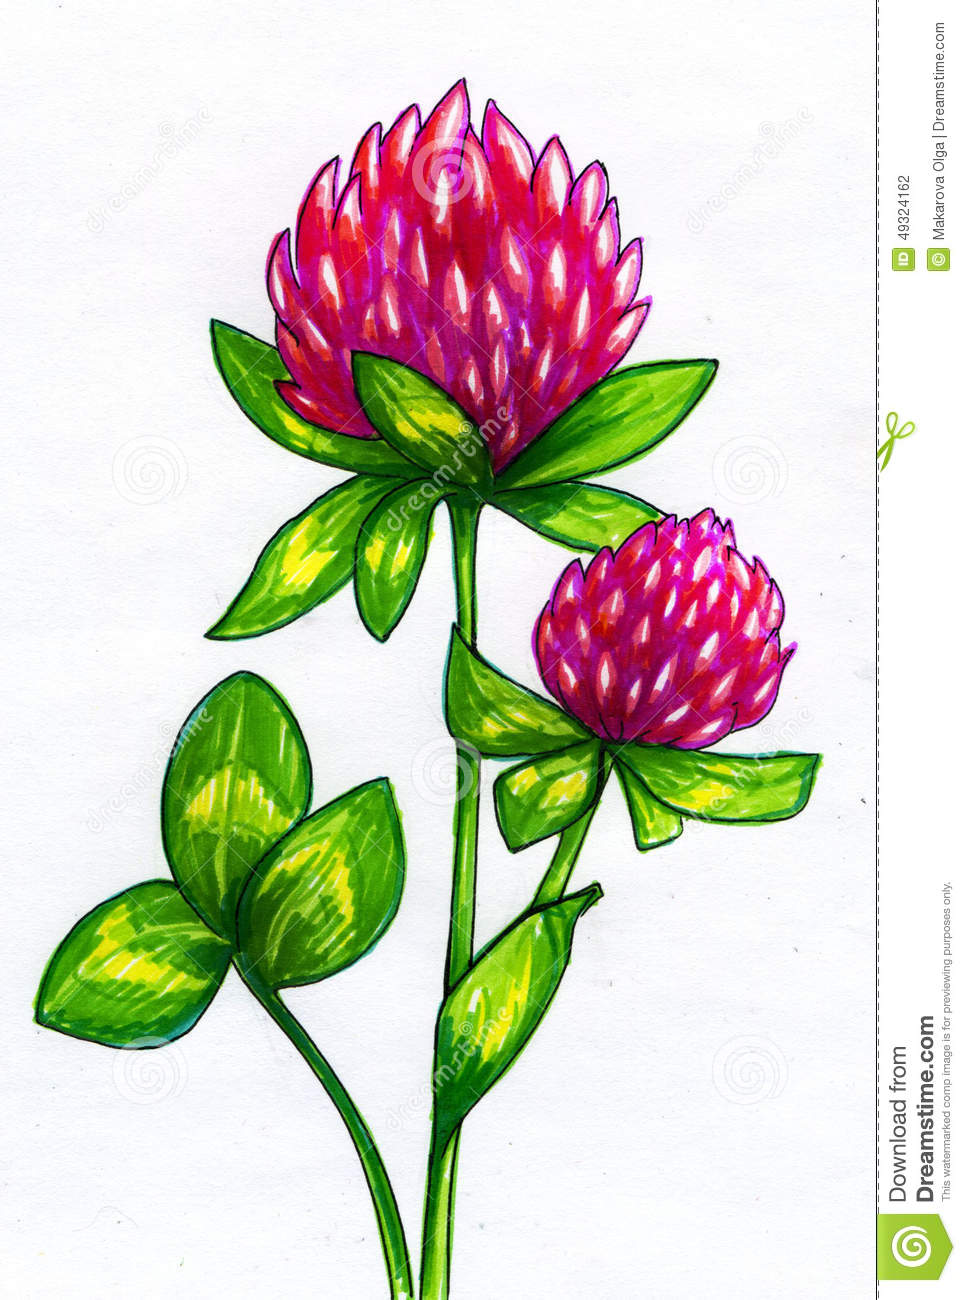 Drawing Of Clover Flowers Stock Illustration.